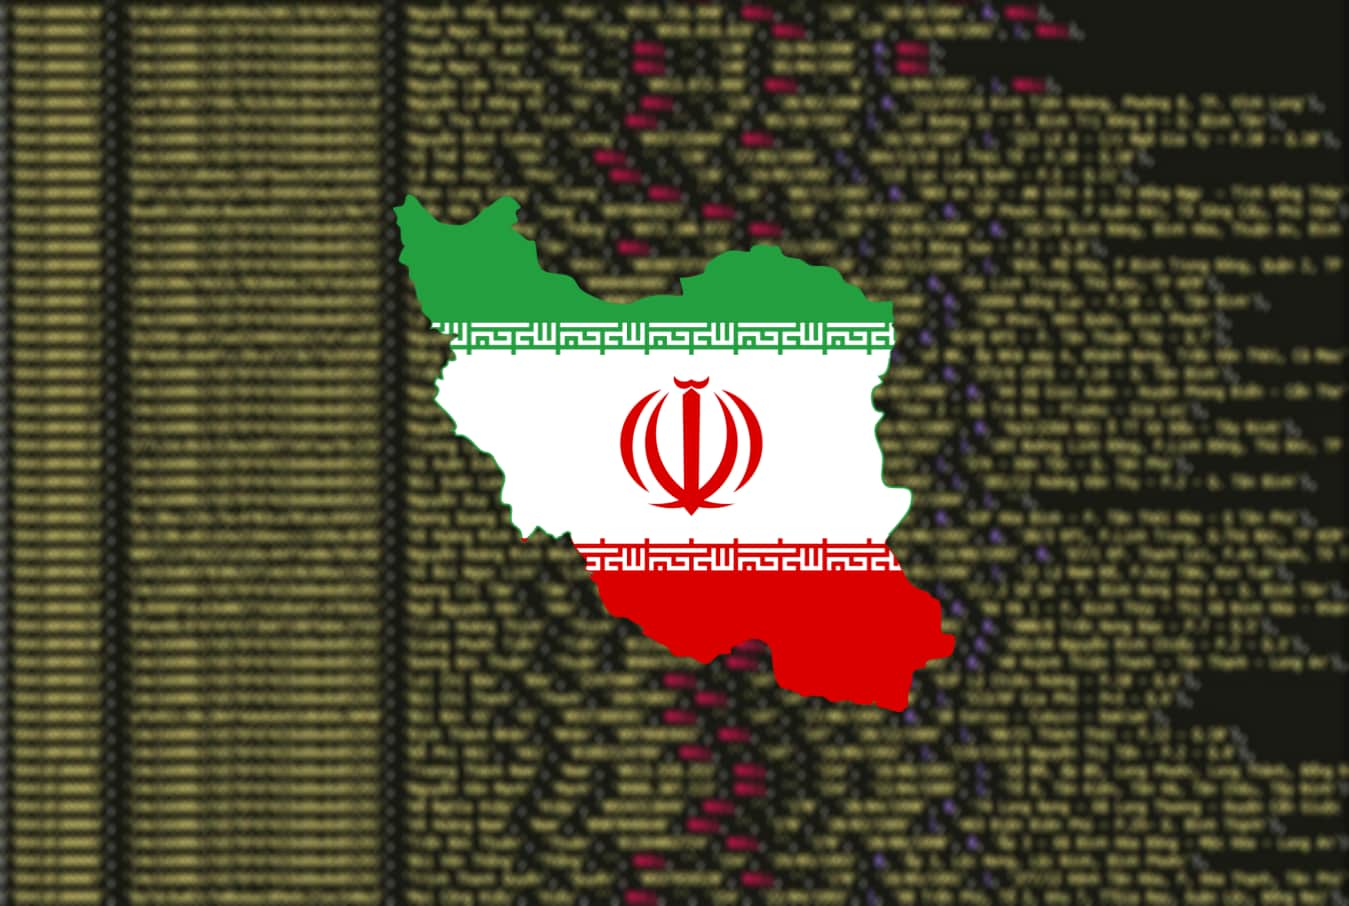 Ride-hailing app leaks personal data of millions of Iranians